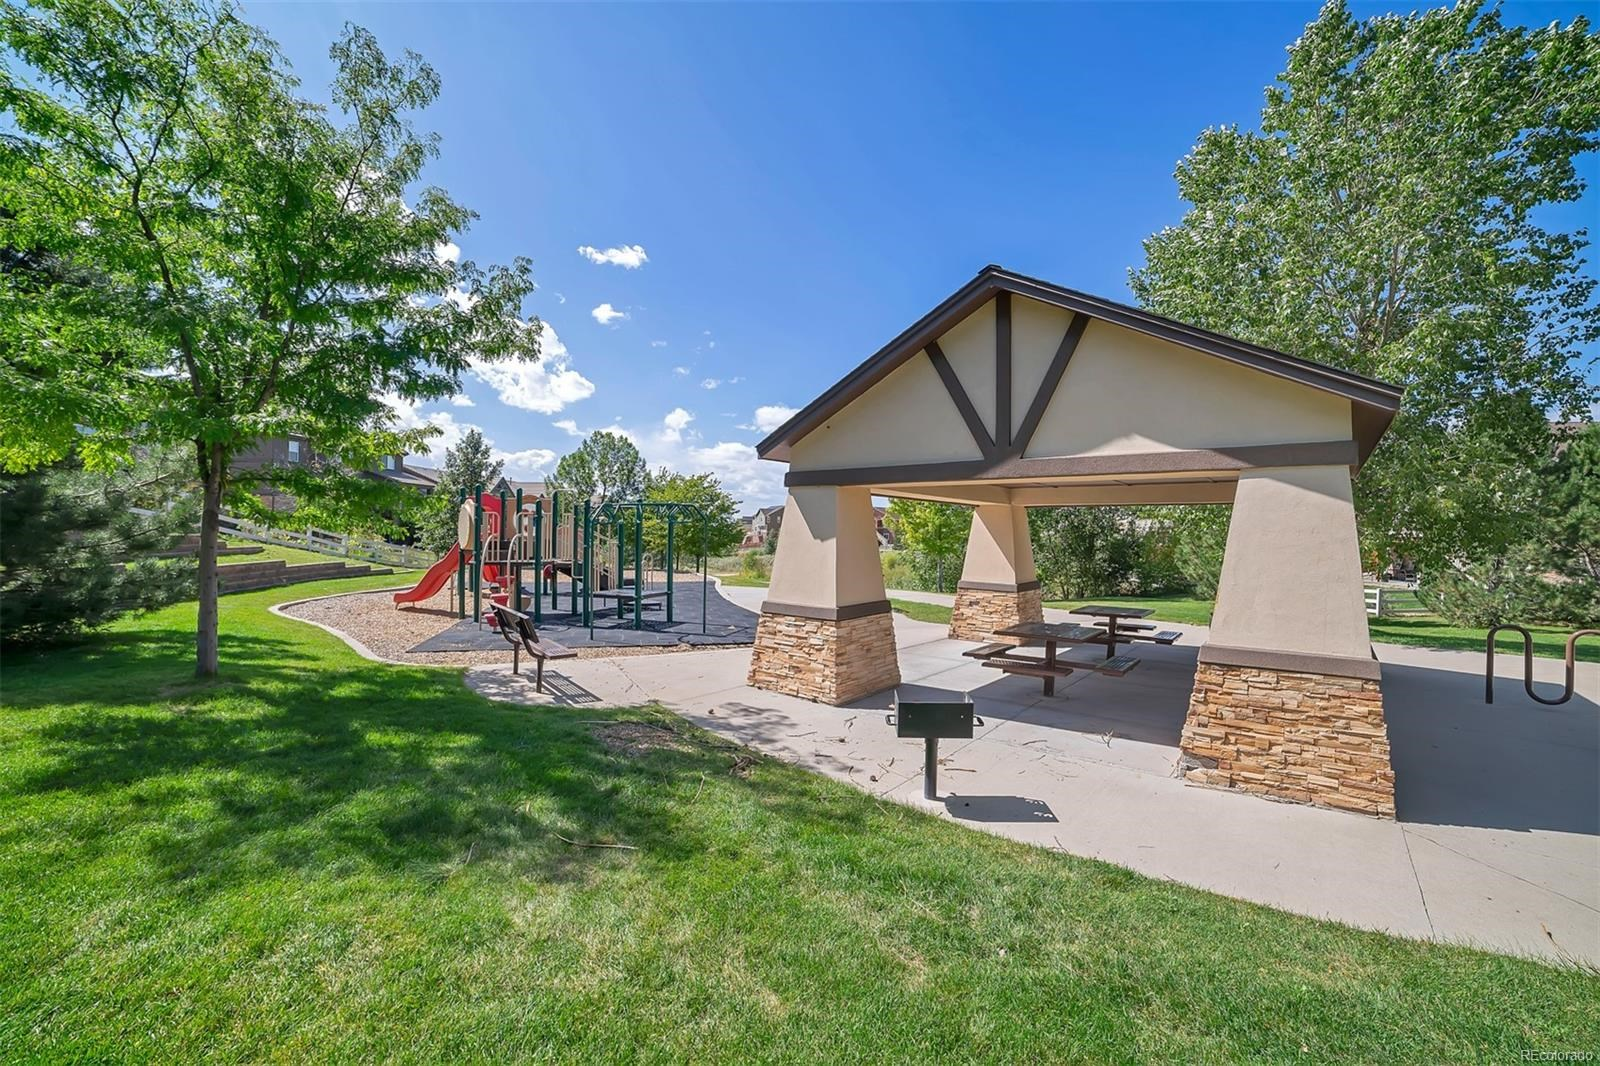 MLS# 2593781 - 27 - 3138 S Nepal Way, Aurora, CO 80013